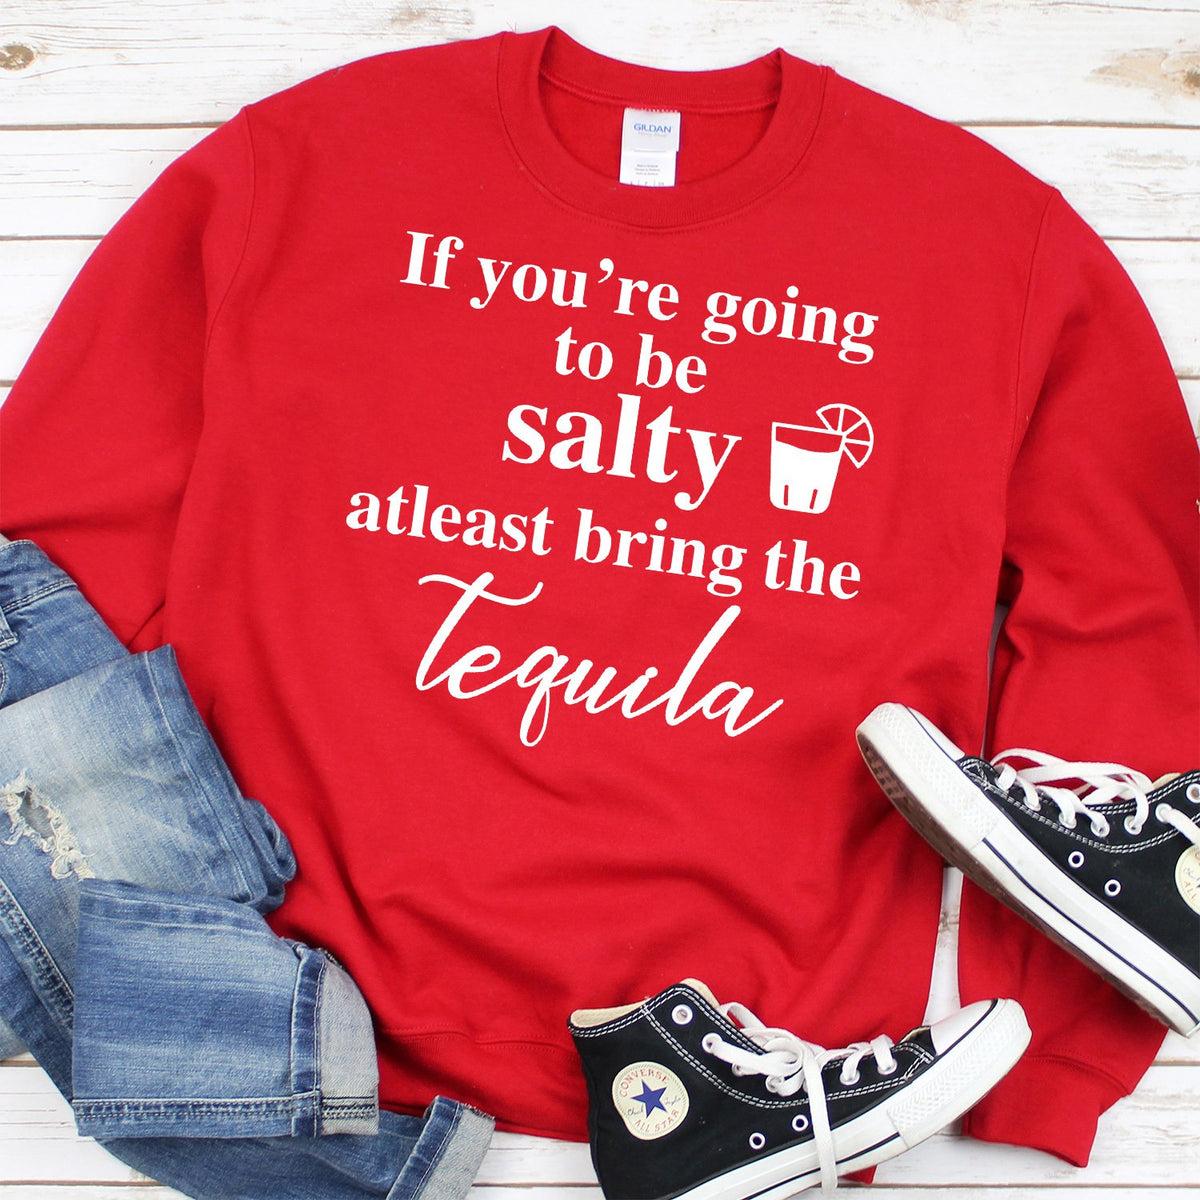 If You're Going to be Salty At Least Bring the Tequila - Long Sleeve Heavy Crewneck Sweatshirt